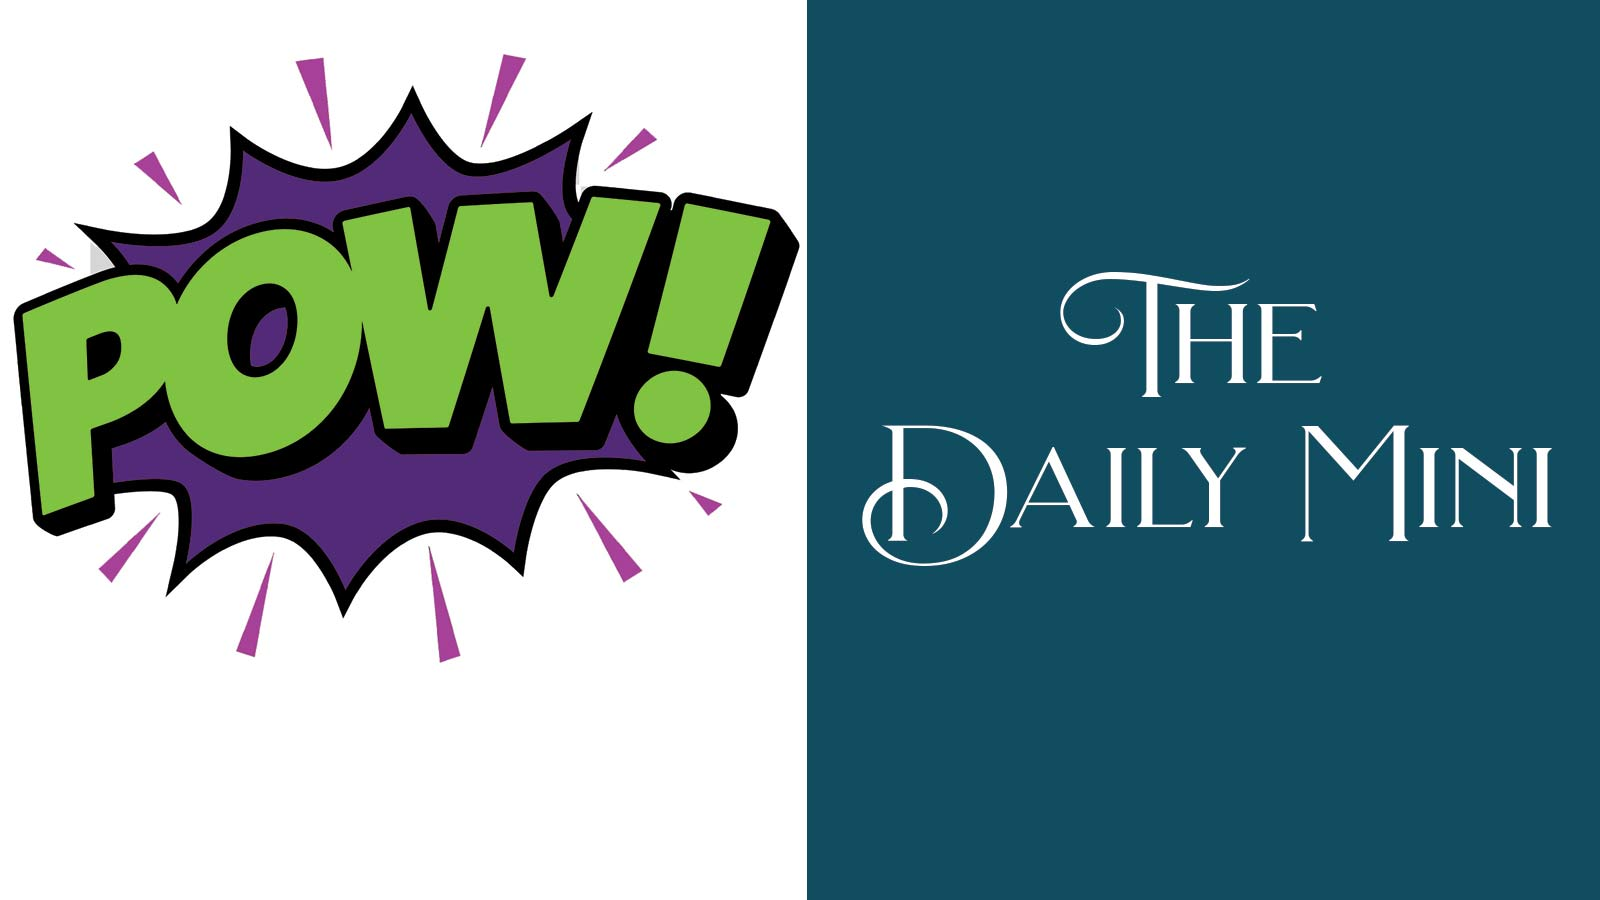 The Daily Mini announcement with POW! cartoon speech bubble.